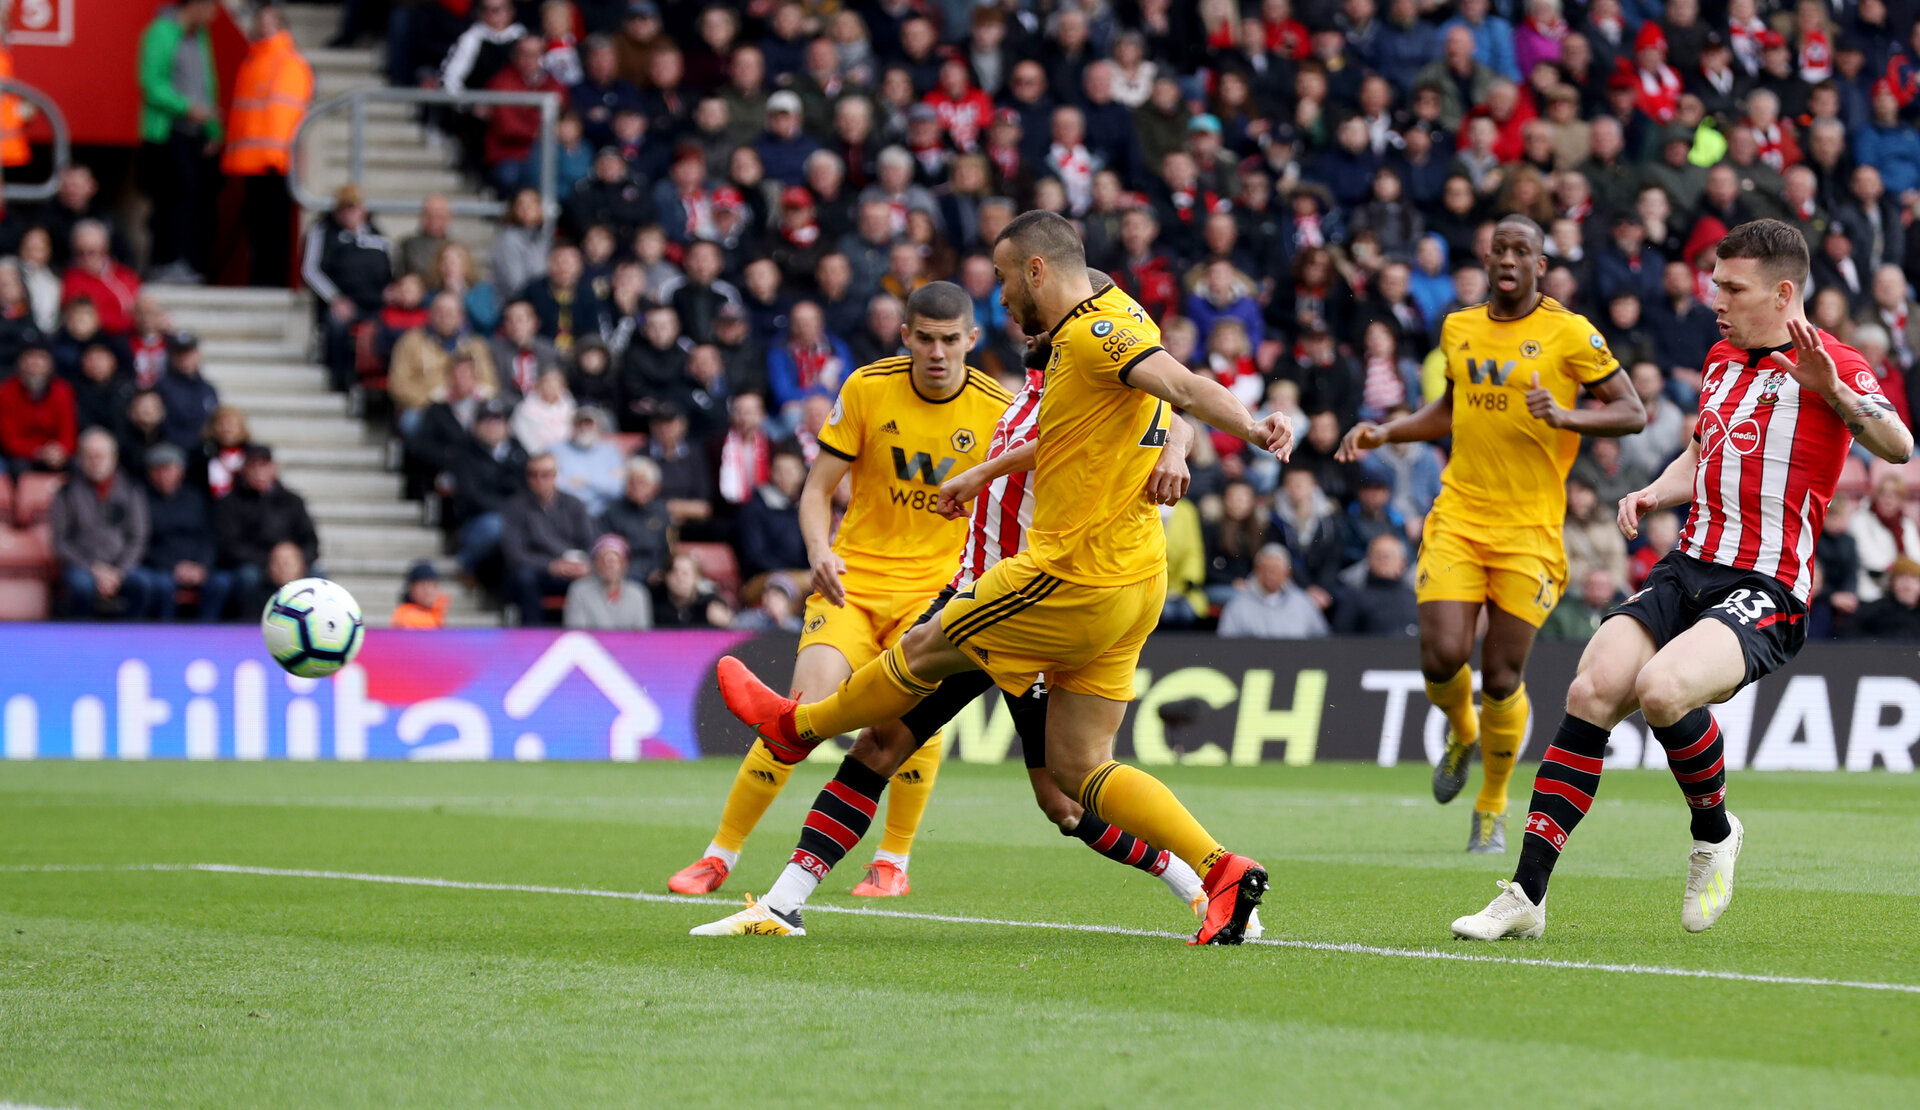 SOUTHAMPTON, ENGLAND - APRIL 13: Nathan Redmond(obscure) of Southampton opens the scoring during the Premier League match between Southampton FC and Wolverhampton Wanderers at St Mary's Stadium on April 13, 2019 in Southampton, United Kingdom. (Photo by Matt Watson/Southampton FC via Getty Images)